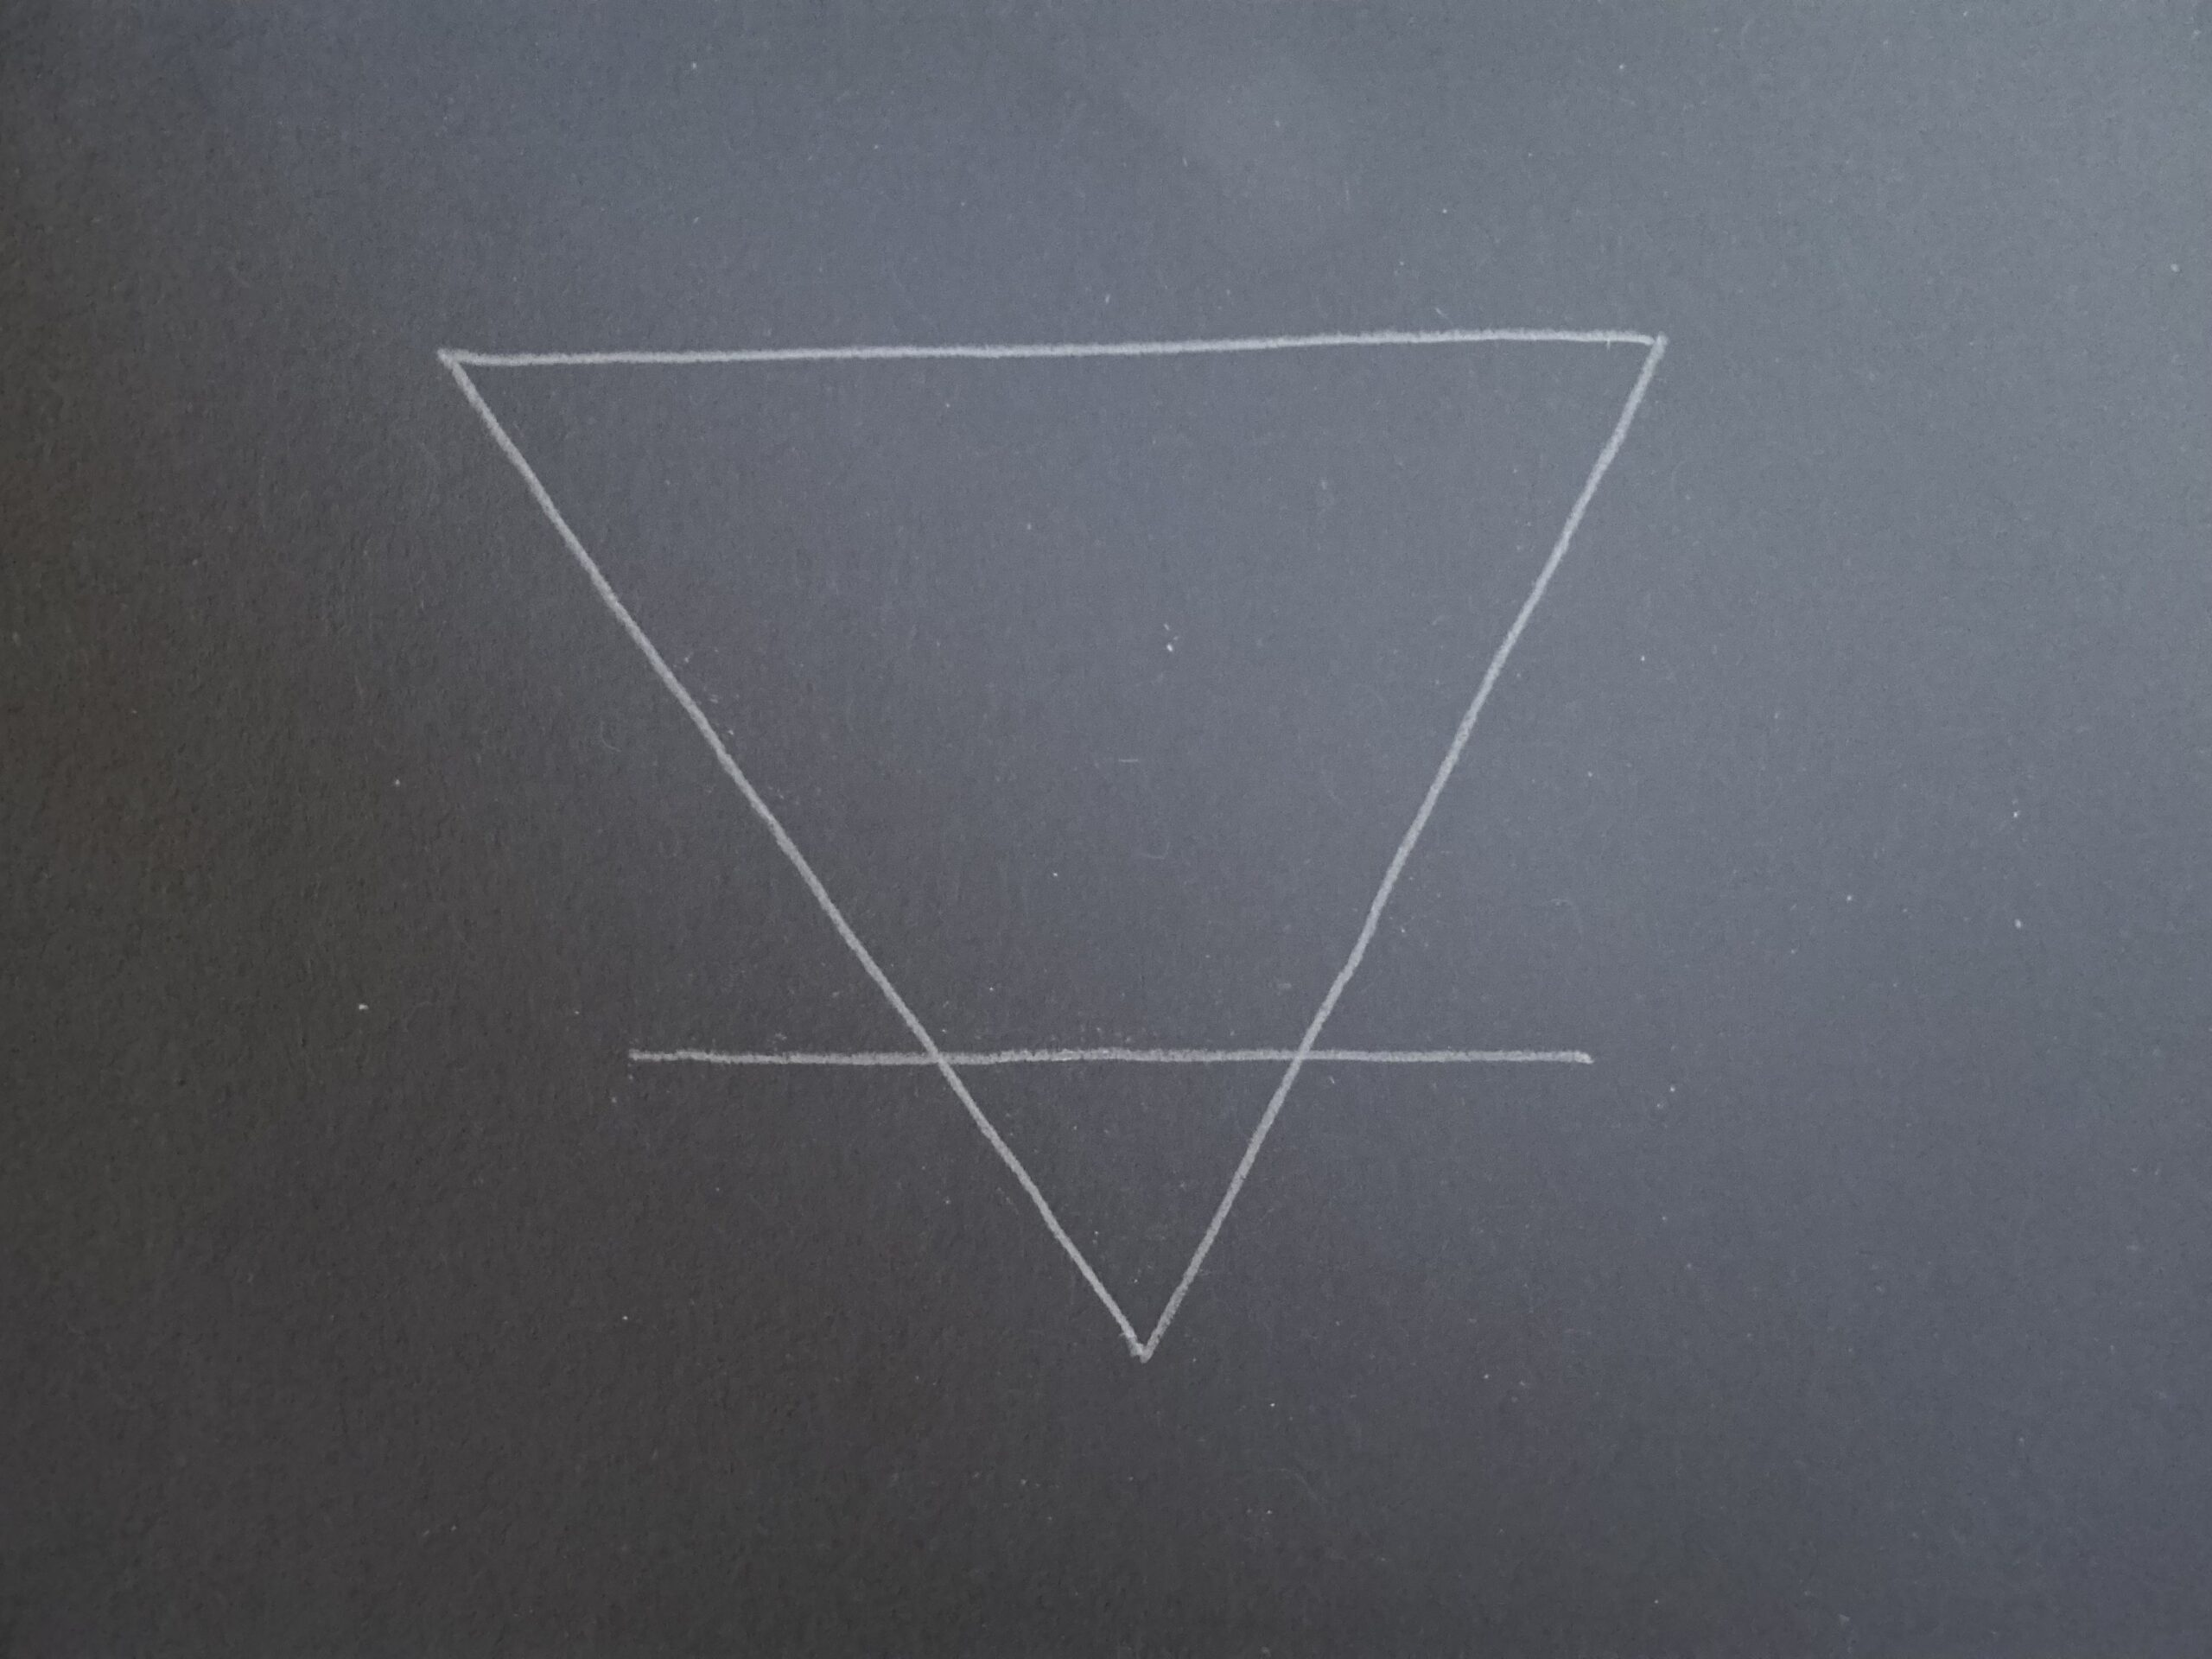 white line drawing of upside down triangle with a horizontal line through the bottom of it against navy background